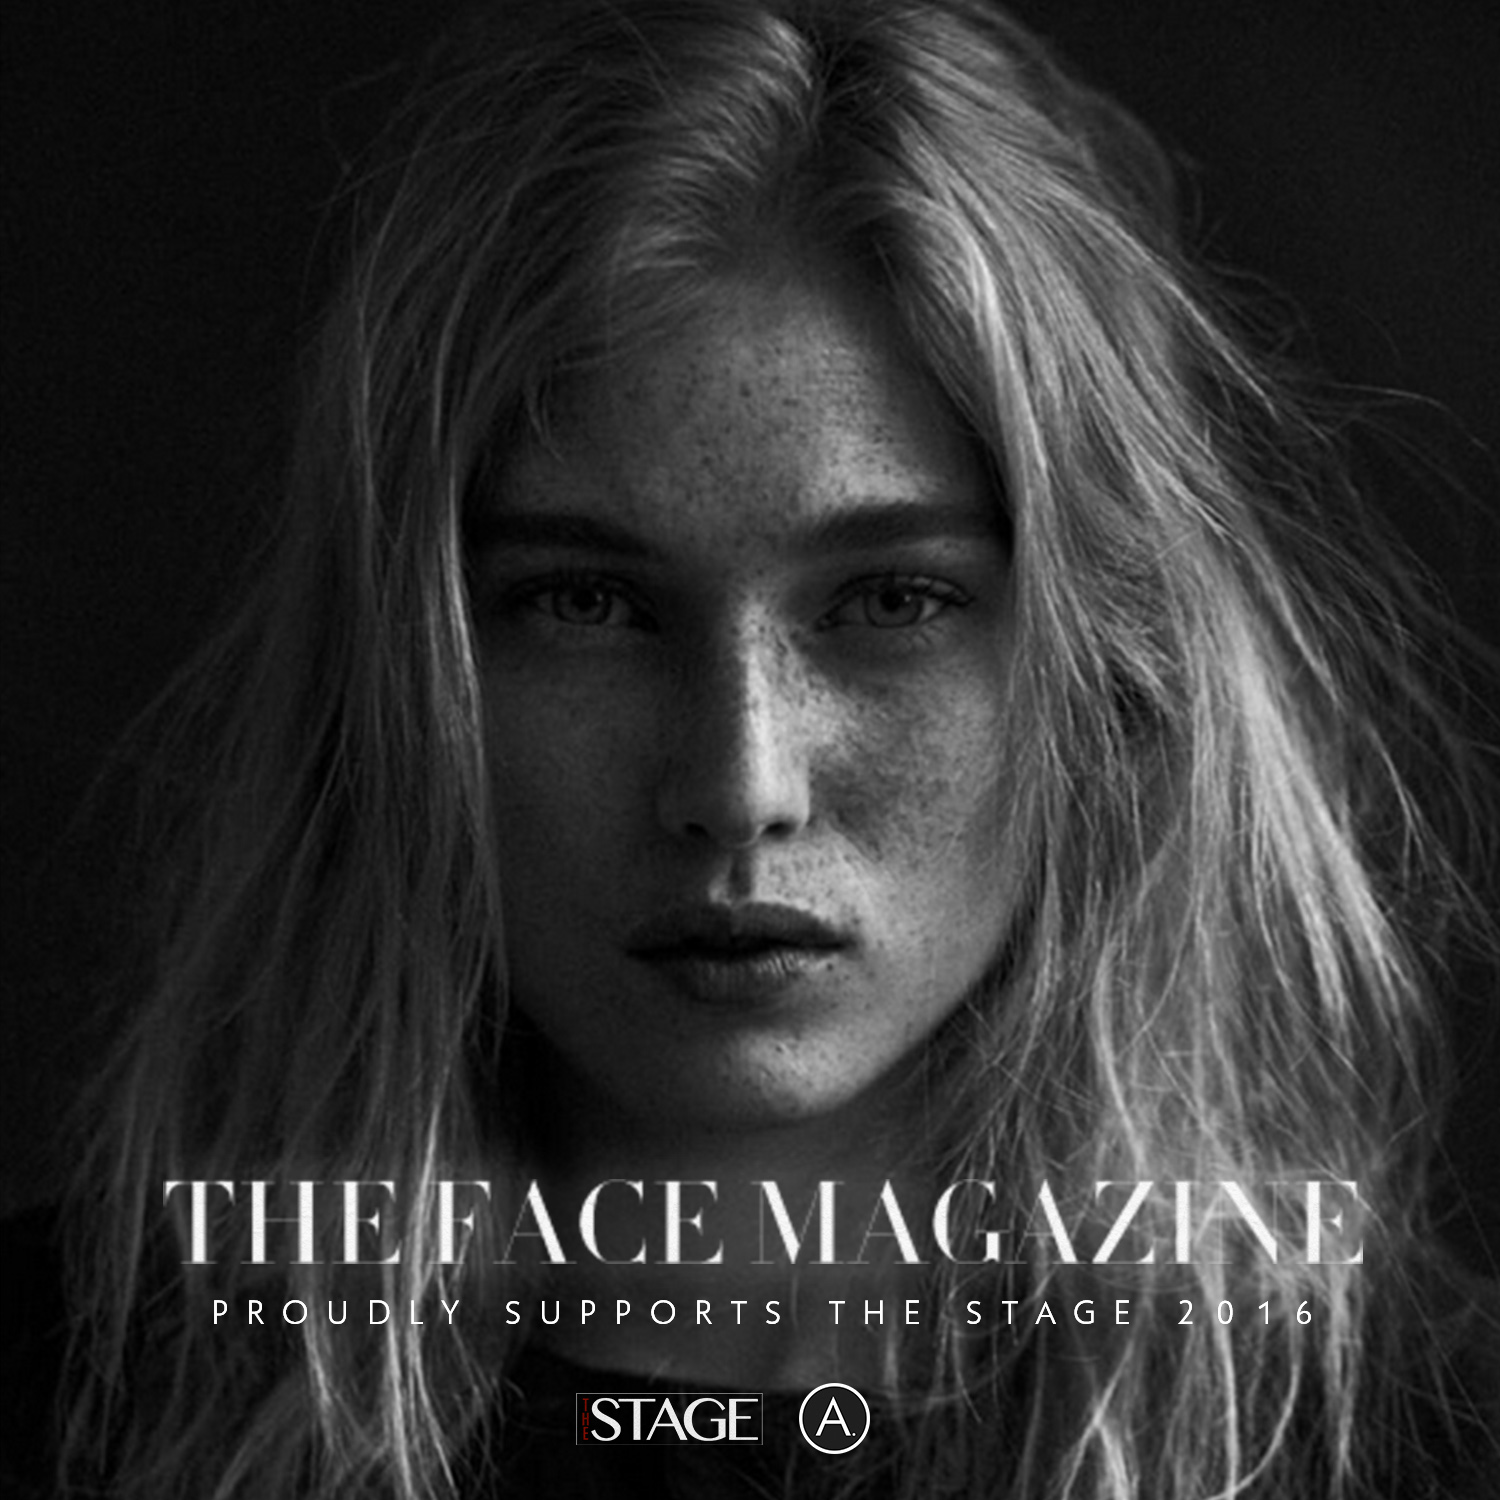 The Face Media Flyer Stage 2016.jpg